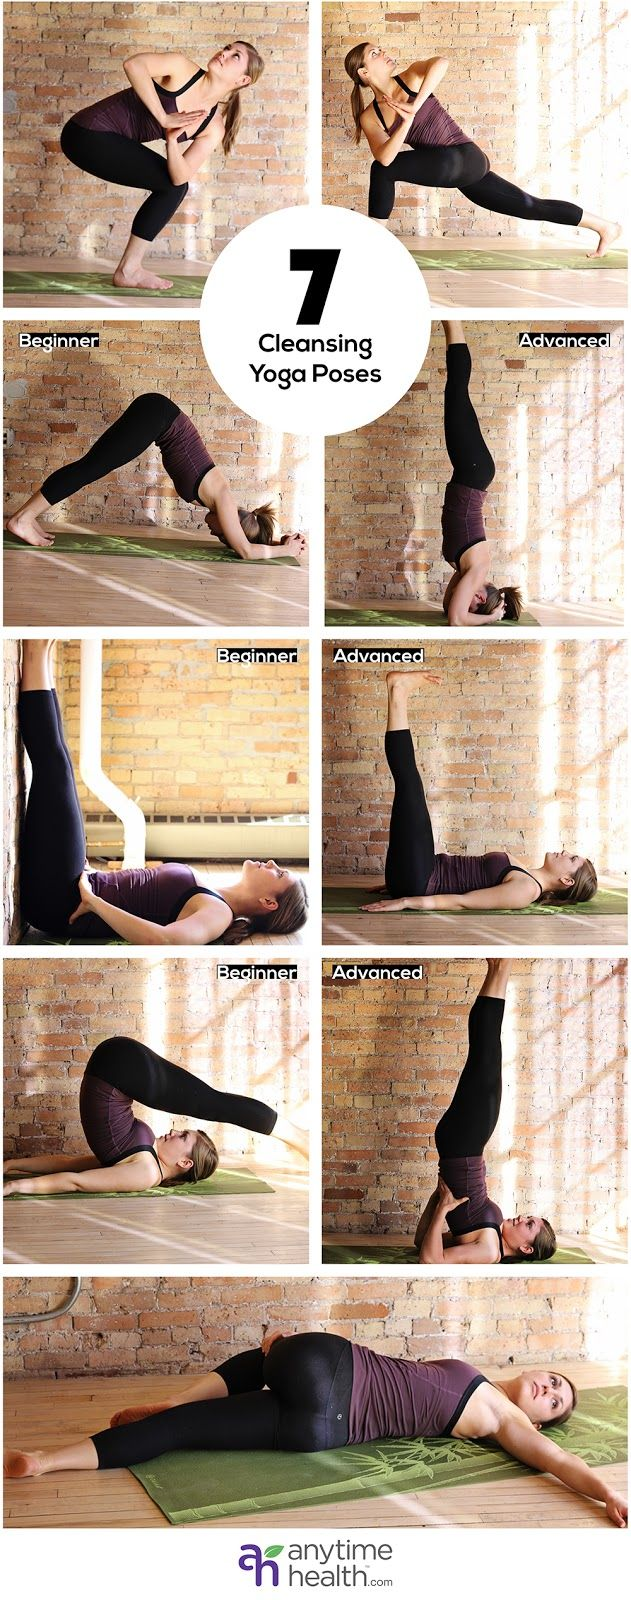 cleansing yoga poses